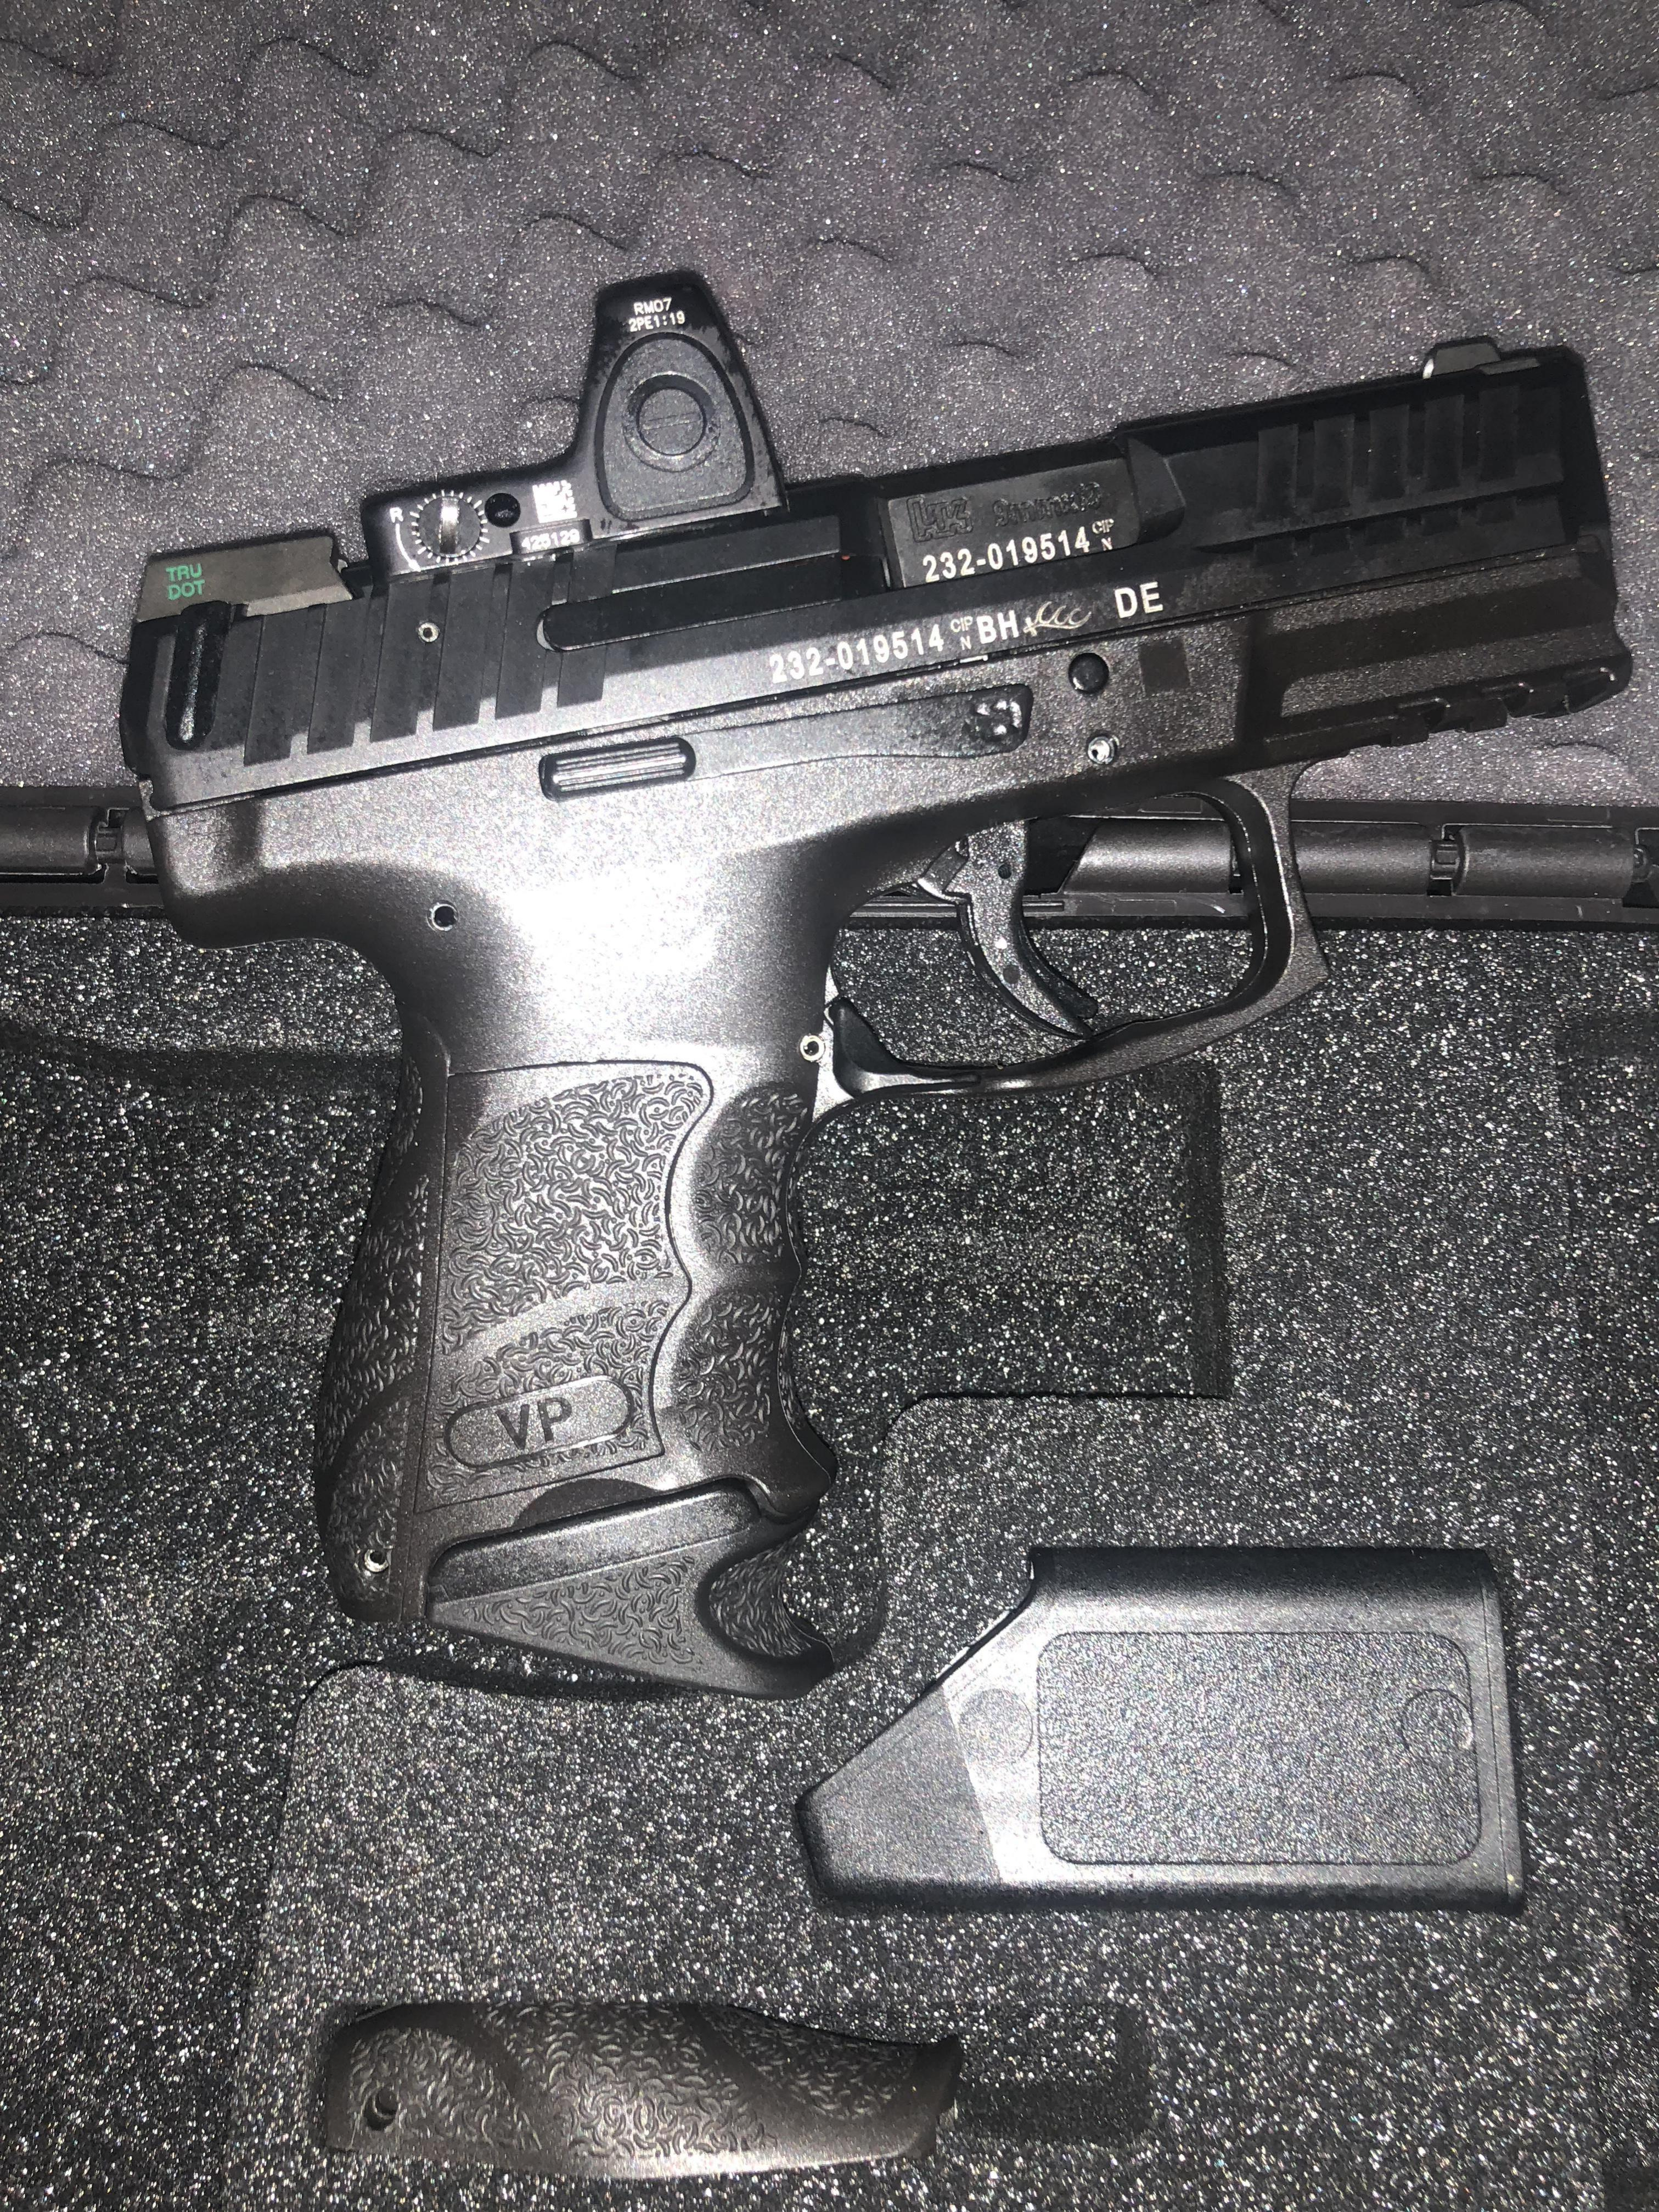 Just received my VP9sk with RMR